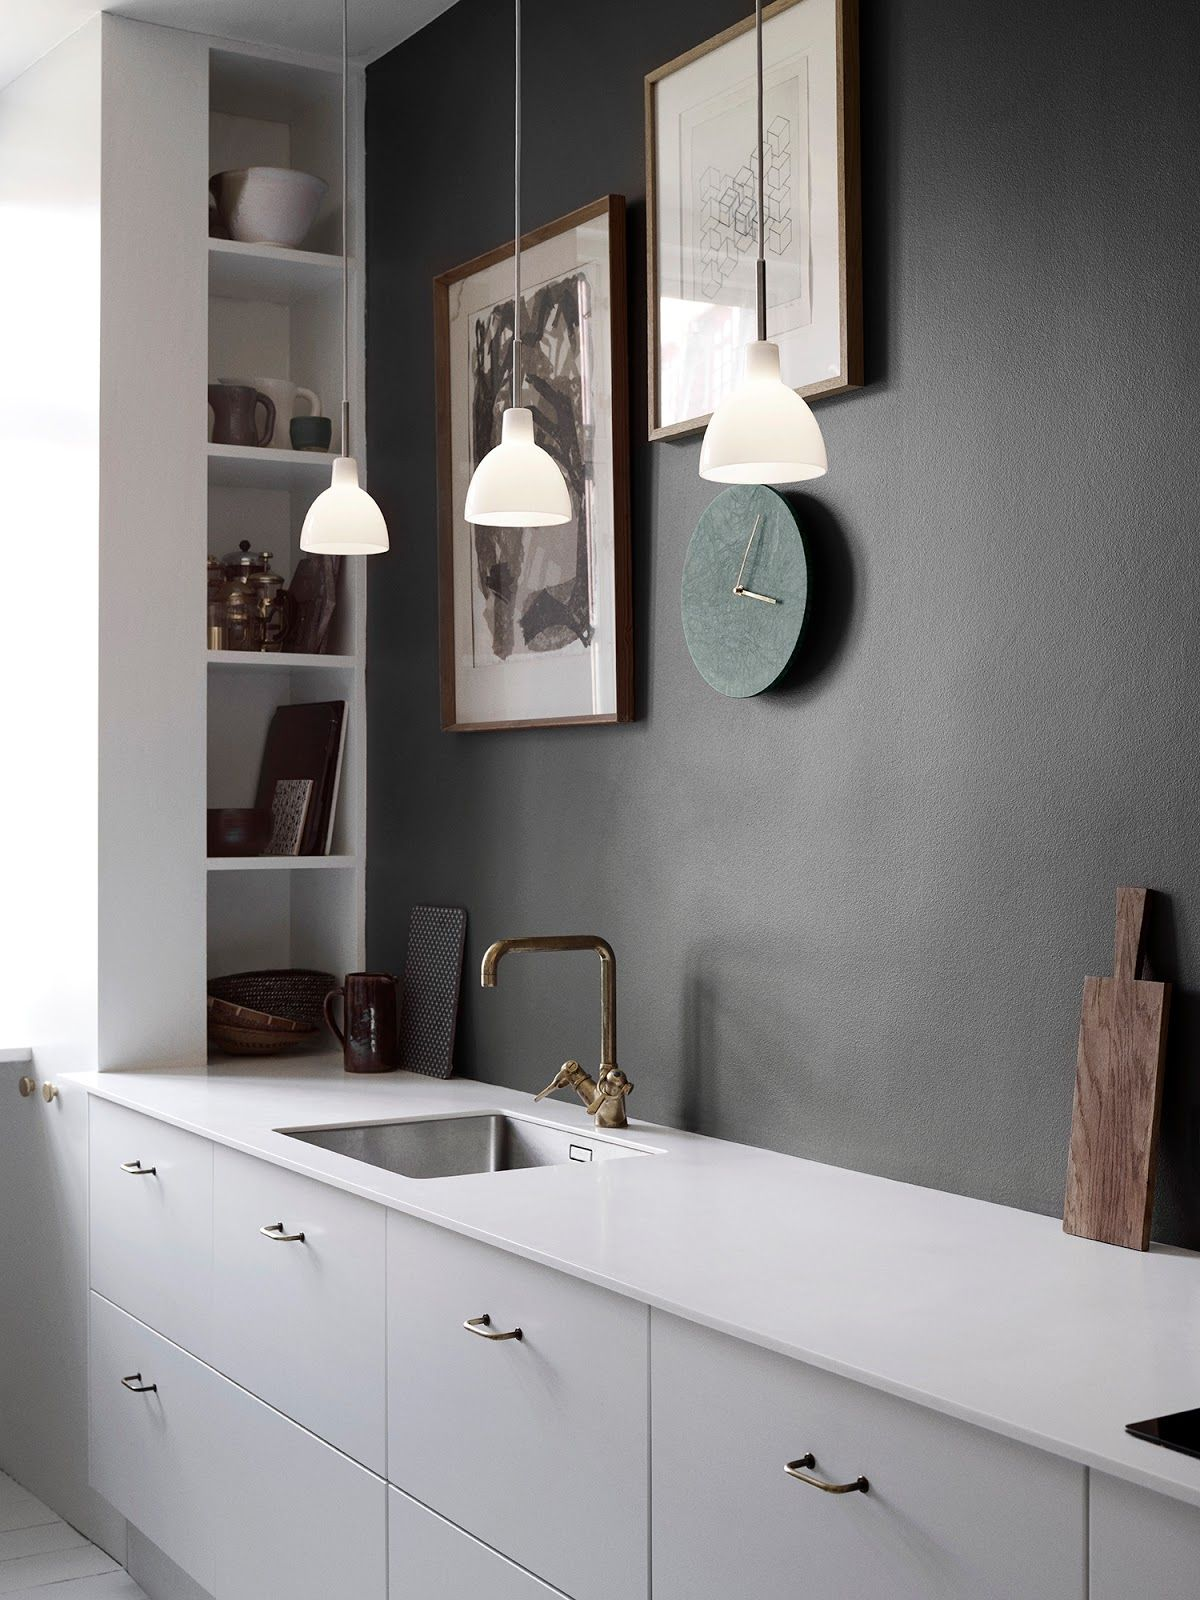 gold and gray kitchen | Inside + Out | Pinterest | Küche ...